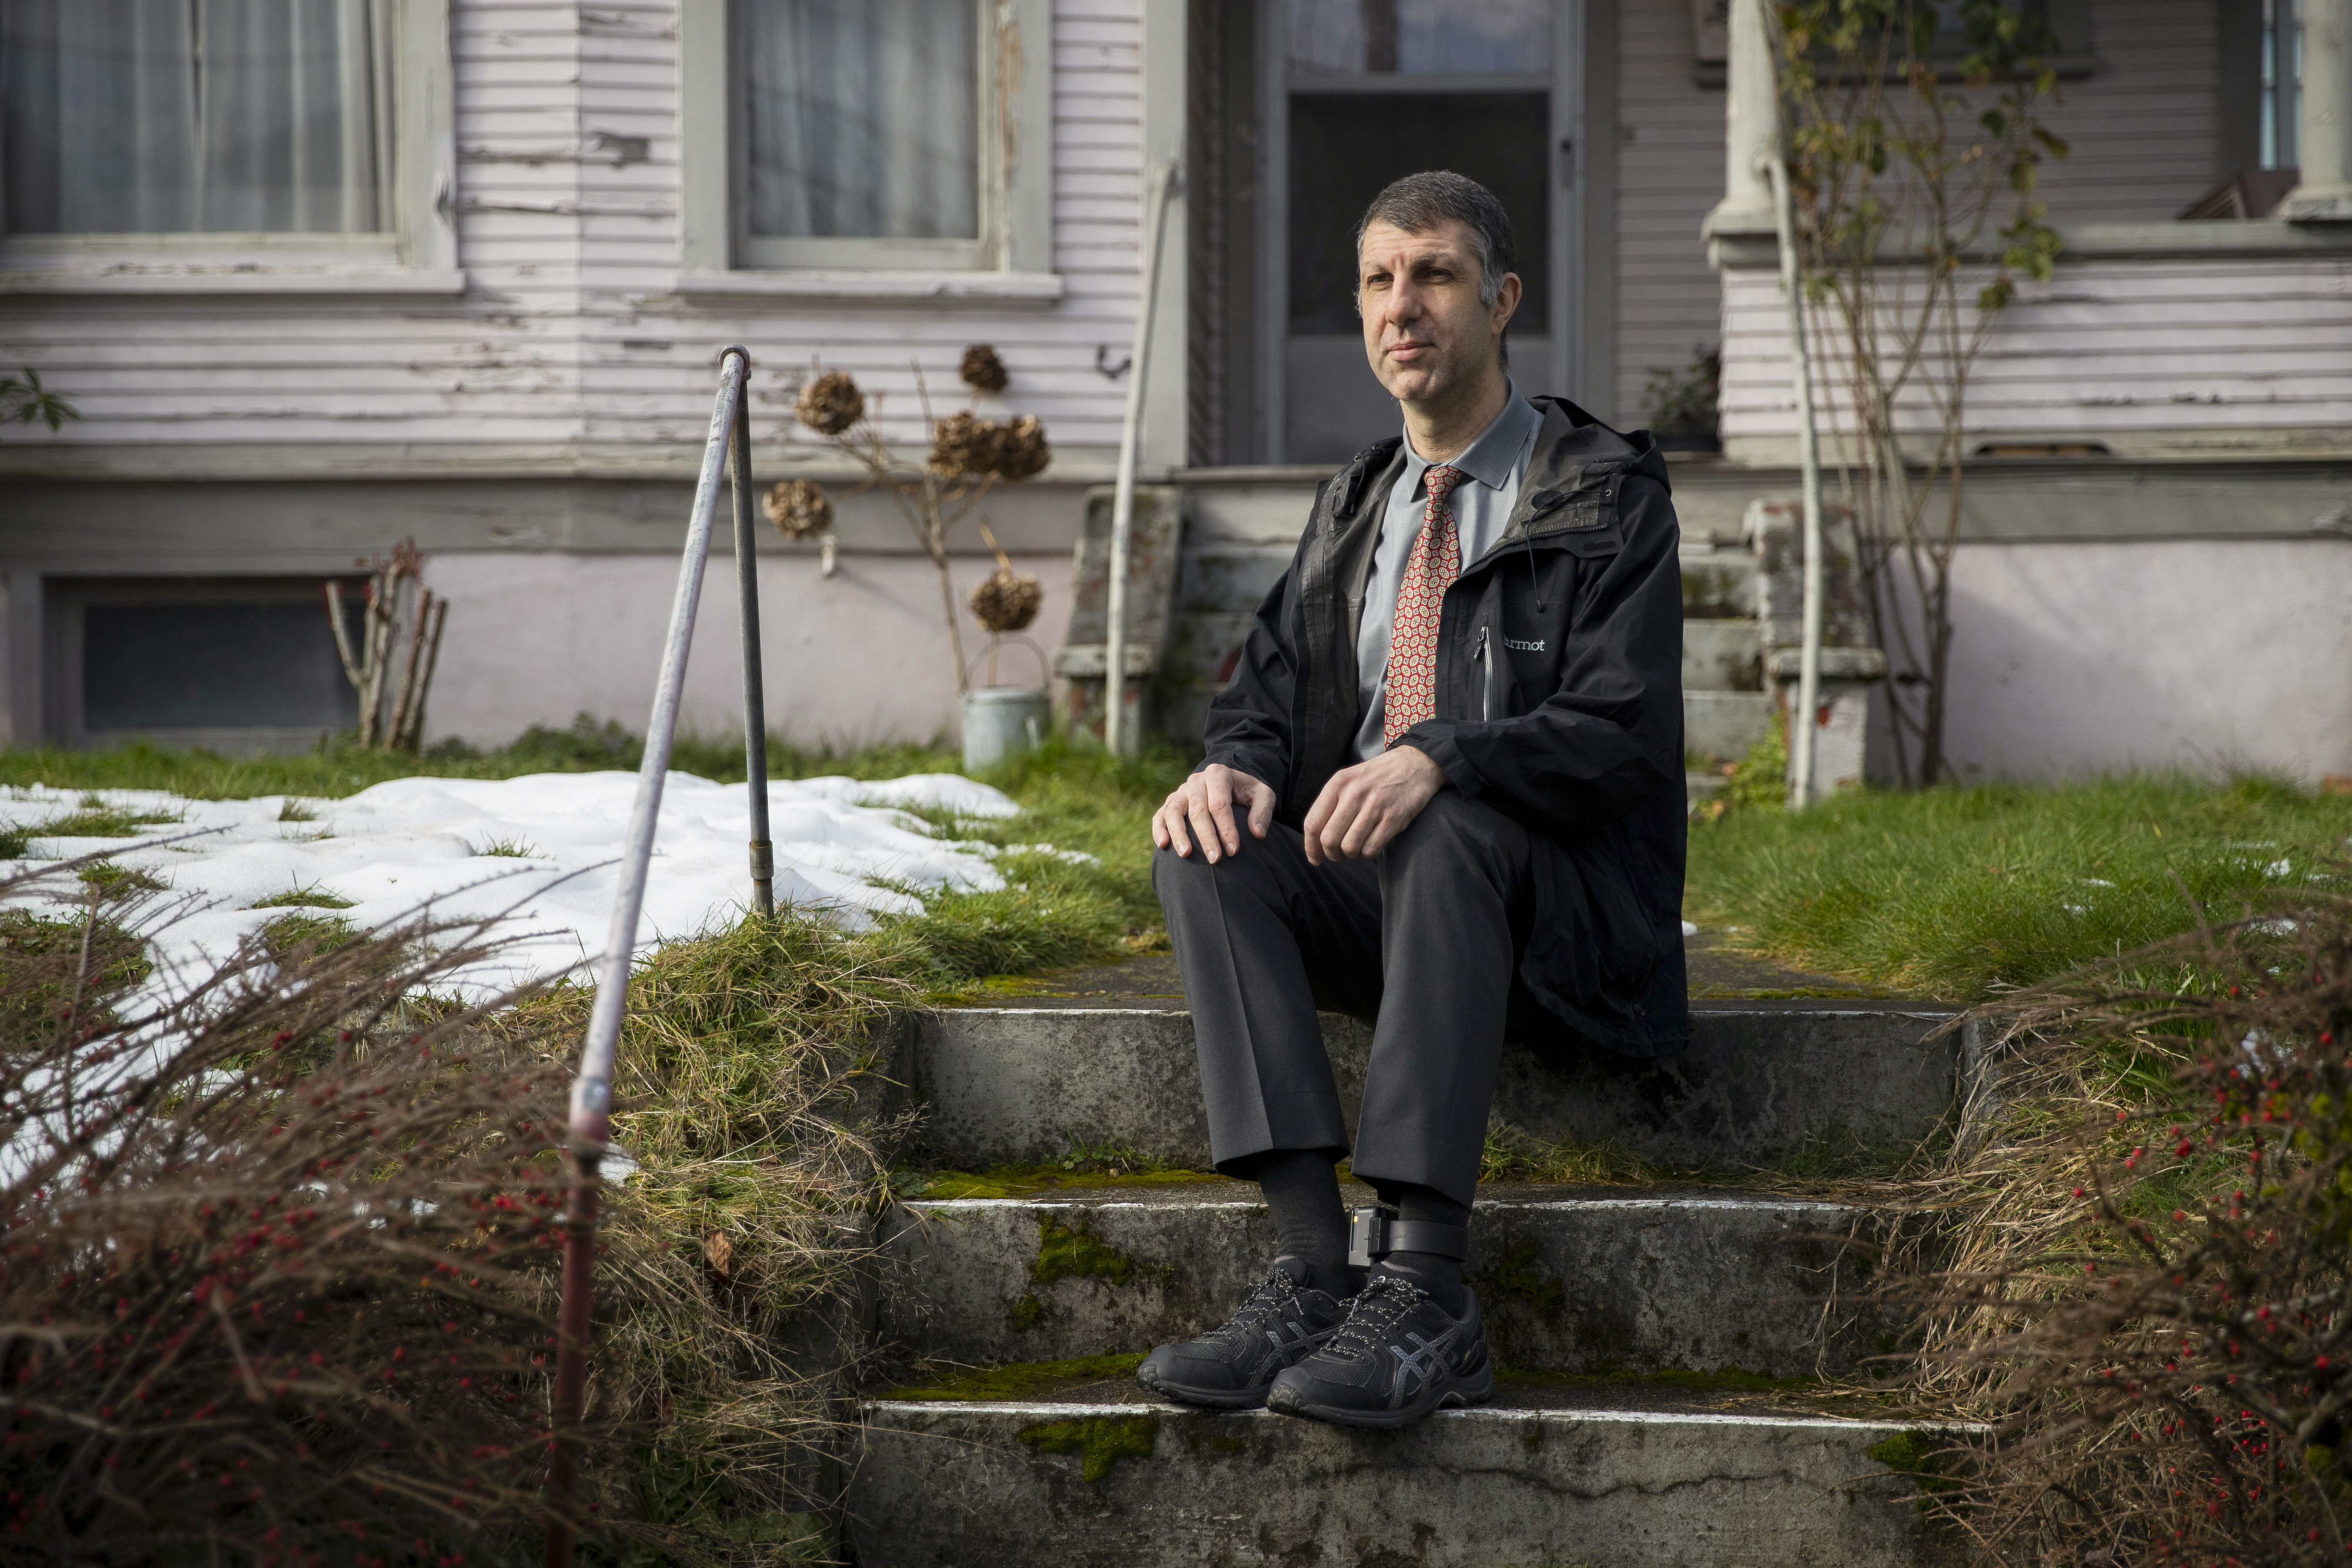 Joe Dibee is portrayed while sitting on steps leading to his family's home on Wednesday, February 17, 2021, in Seattle. KUOW Photo/Megan Farmer